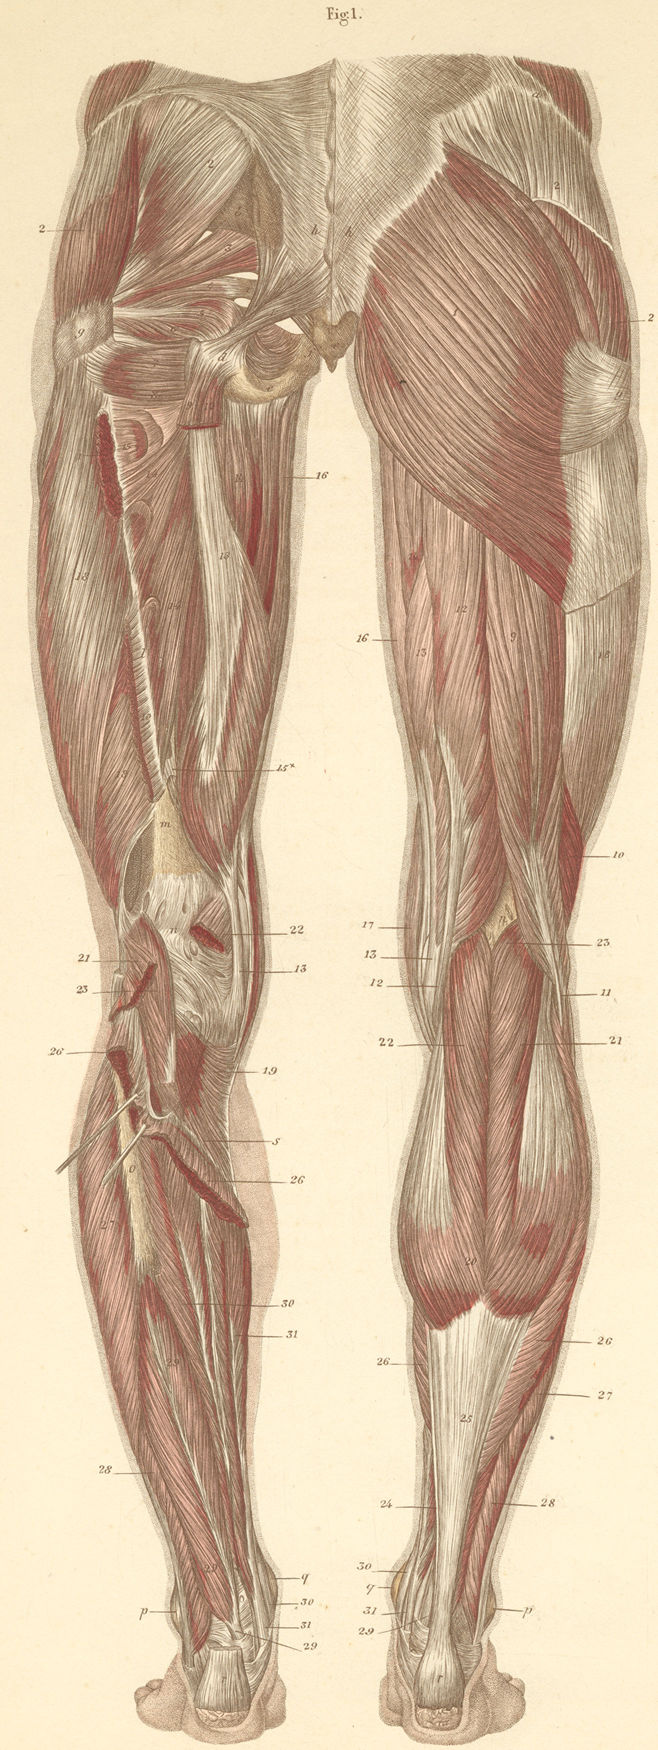 Anatomy and Orthopedics Atlas(Photos of cases) - Page 8